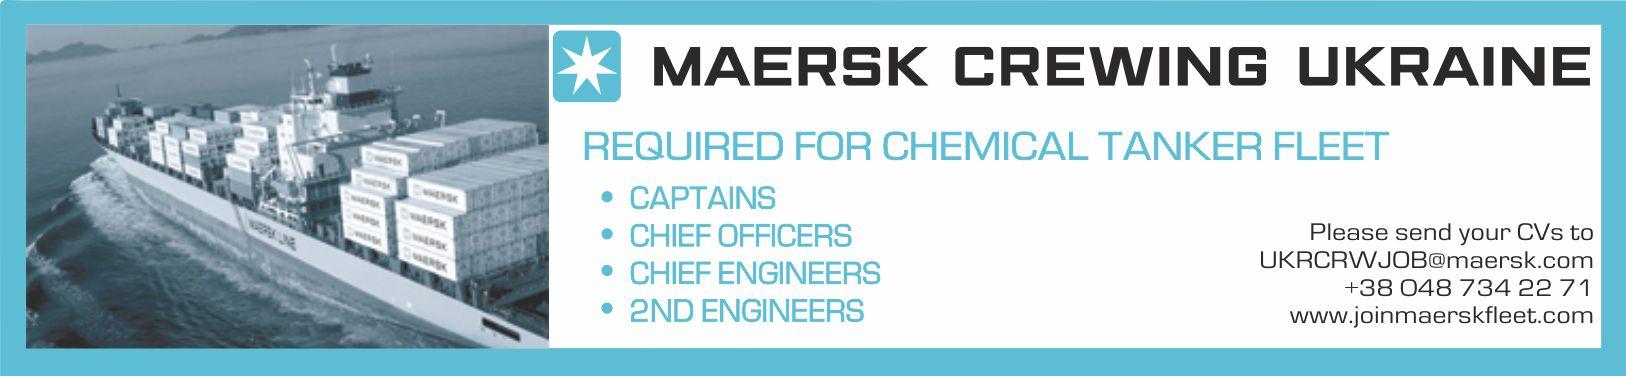 Вакансии на chenical tankers для captains, Chief engineer, 2nd engineer, Chief officeer